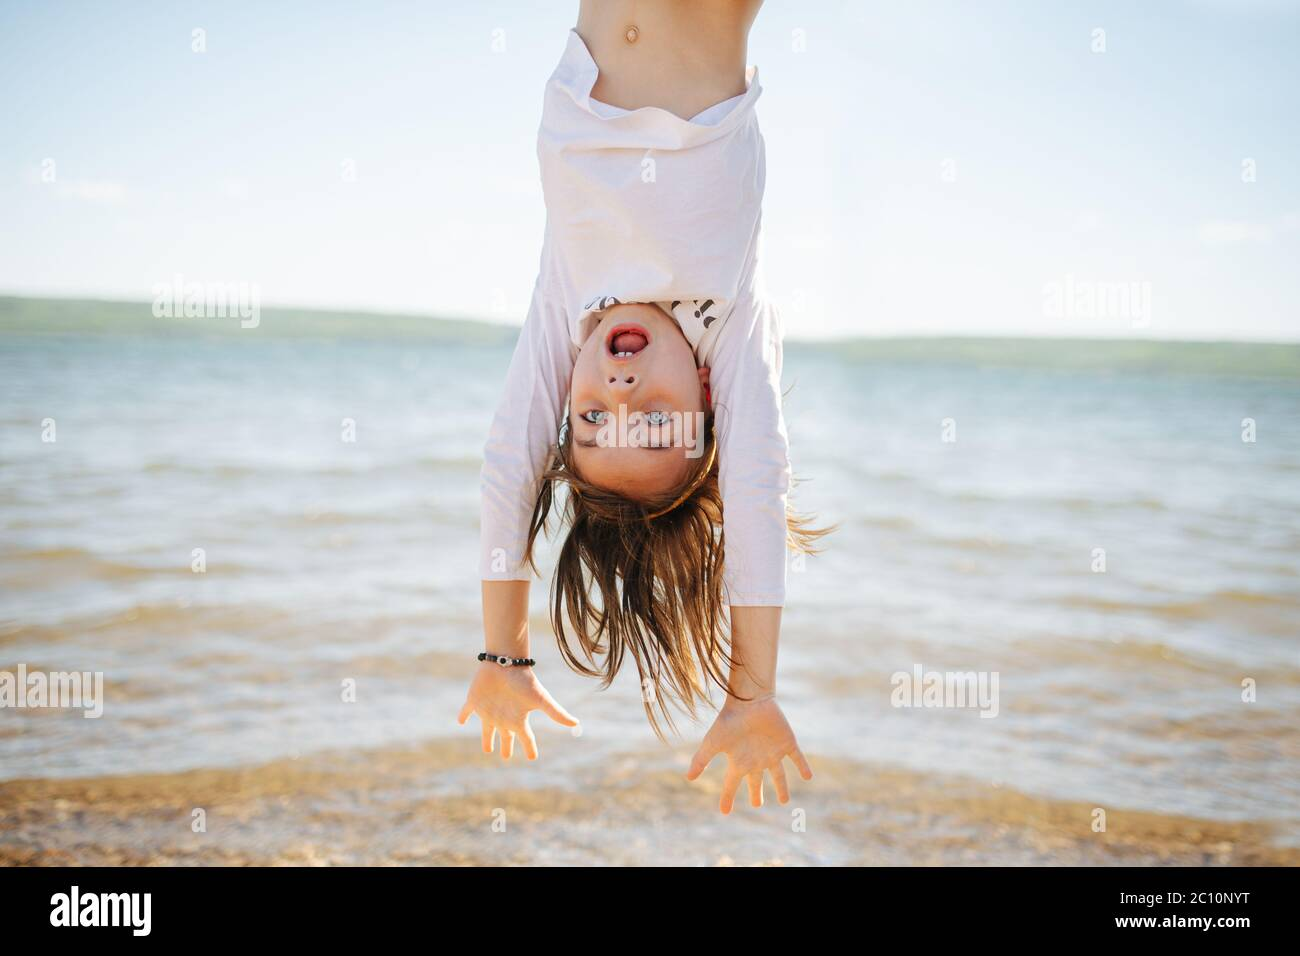 Little hiperemotional school age girl hanging upside down. On a lake shoreside. Stock Photo